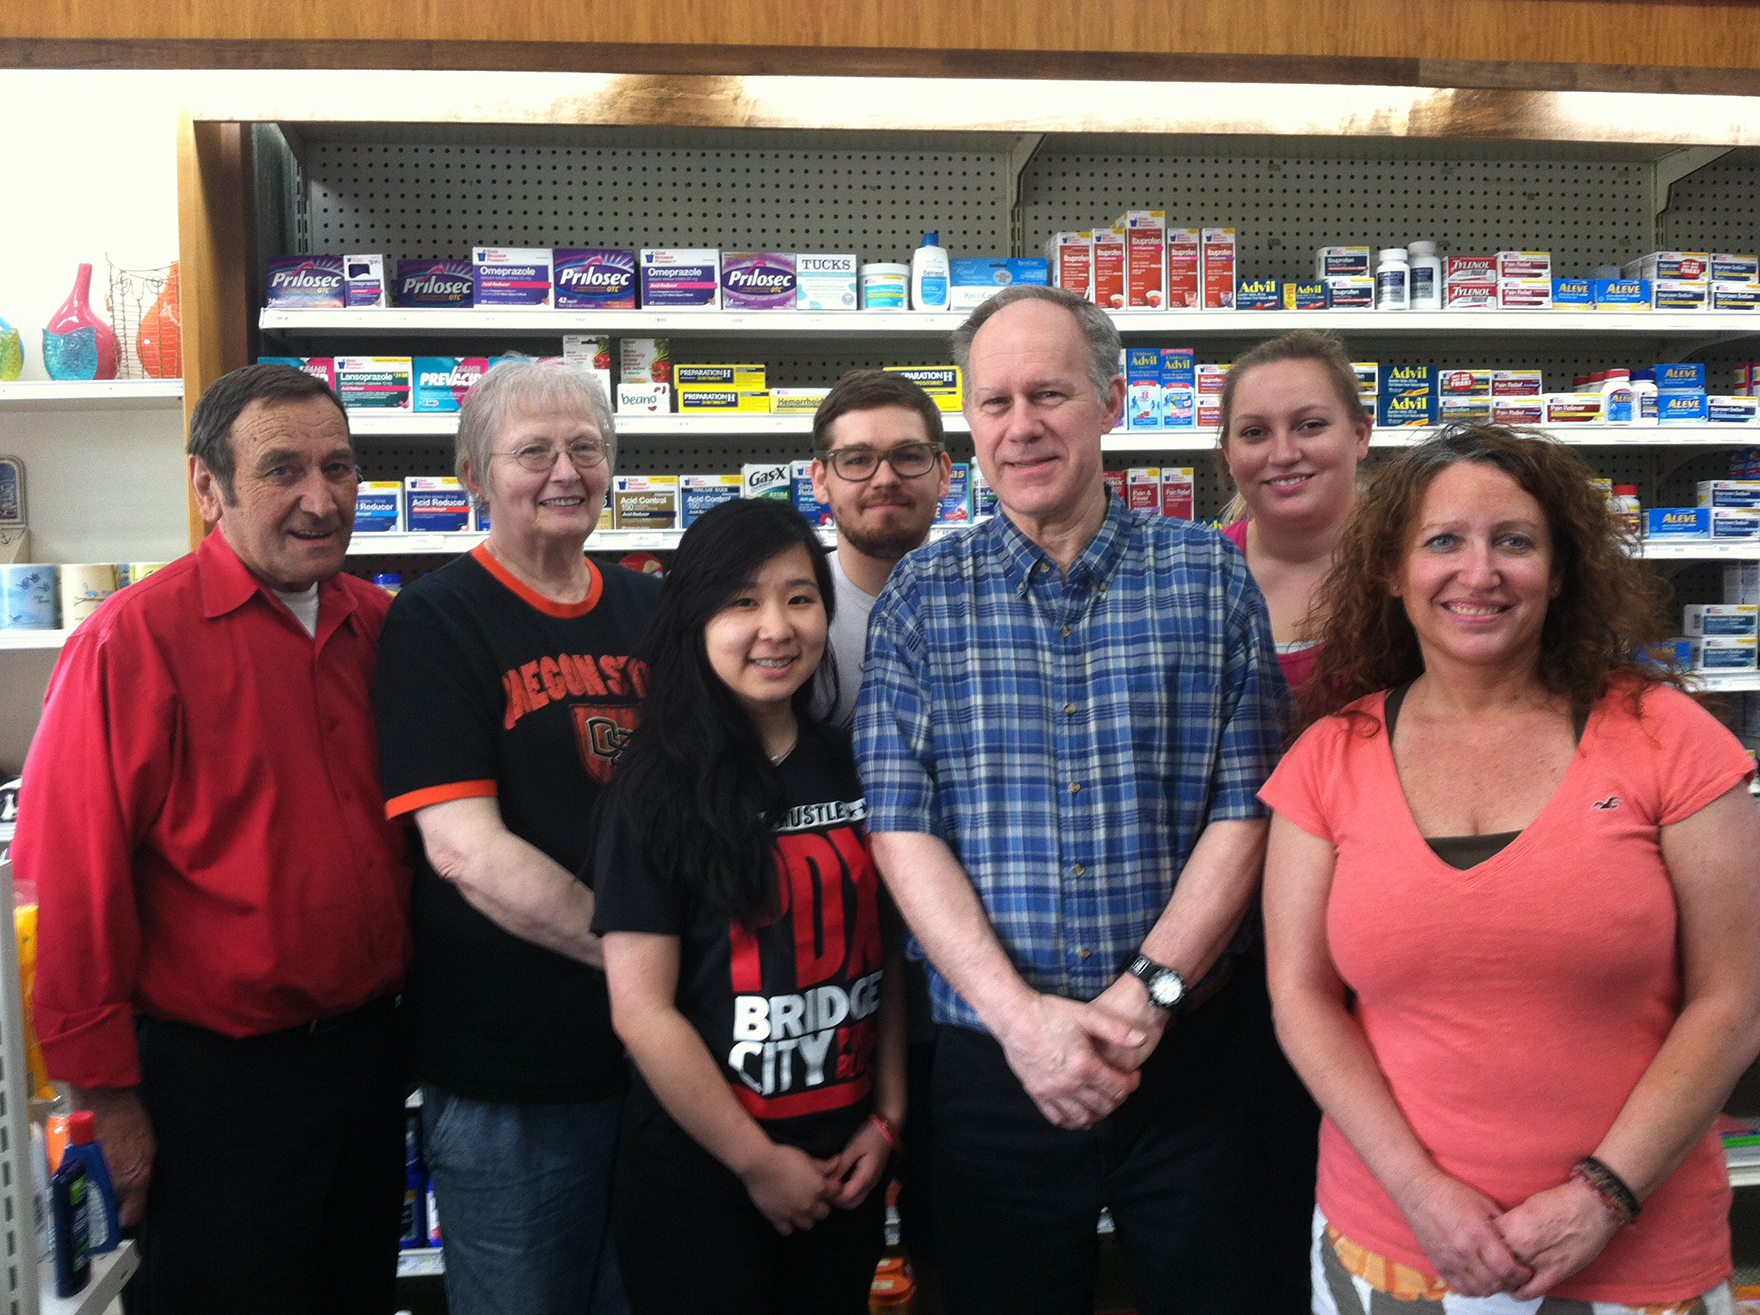 Gary Balo and the crew at Paulsens Pharmacy. (Jane Perkins)